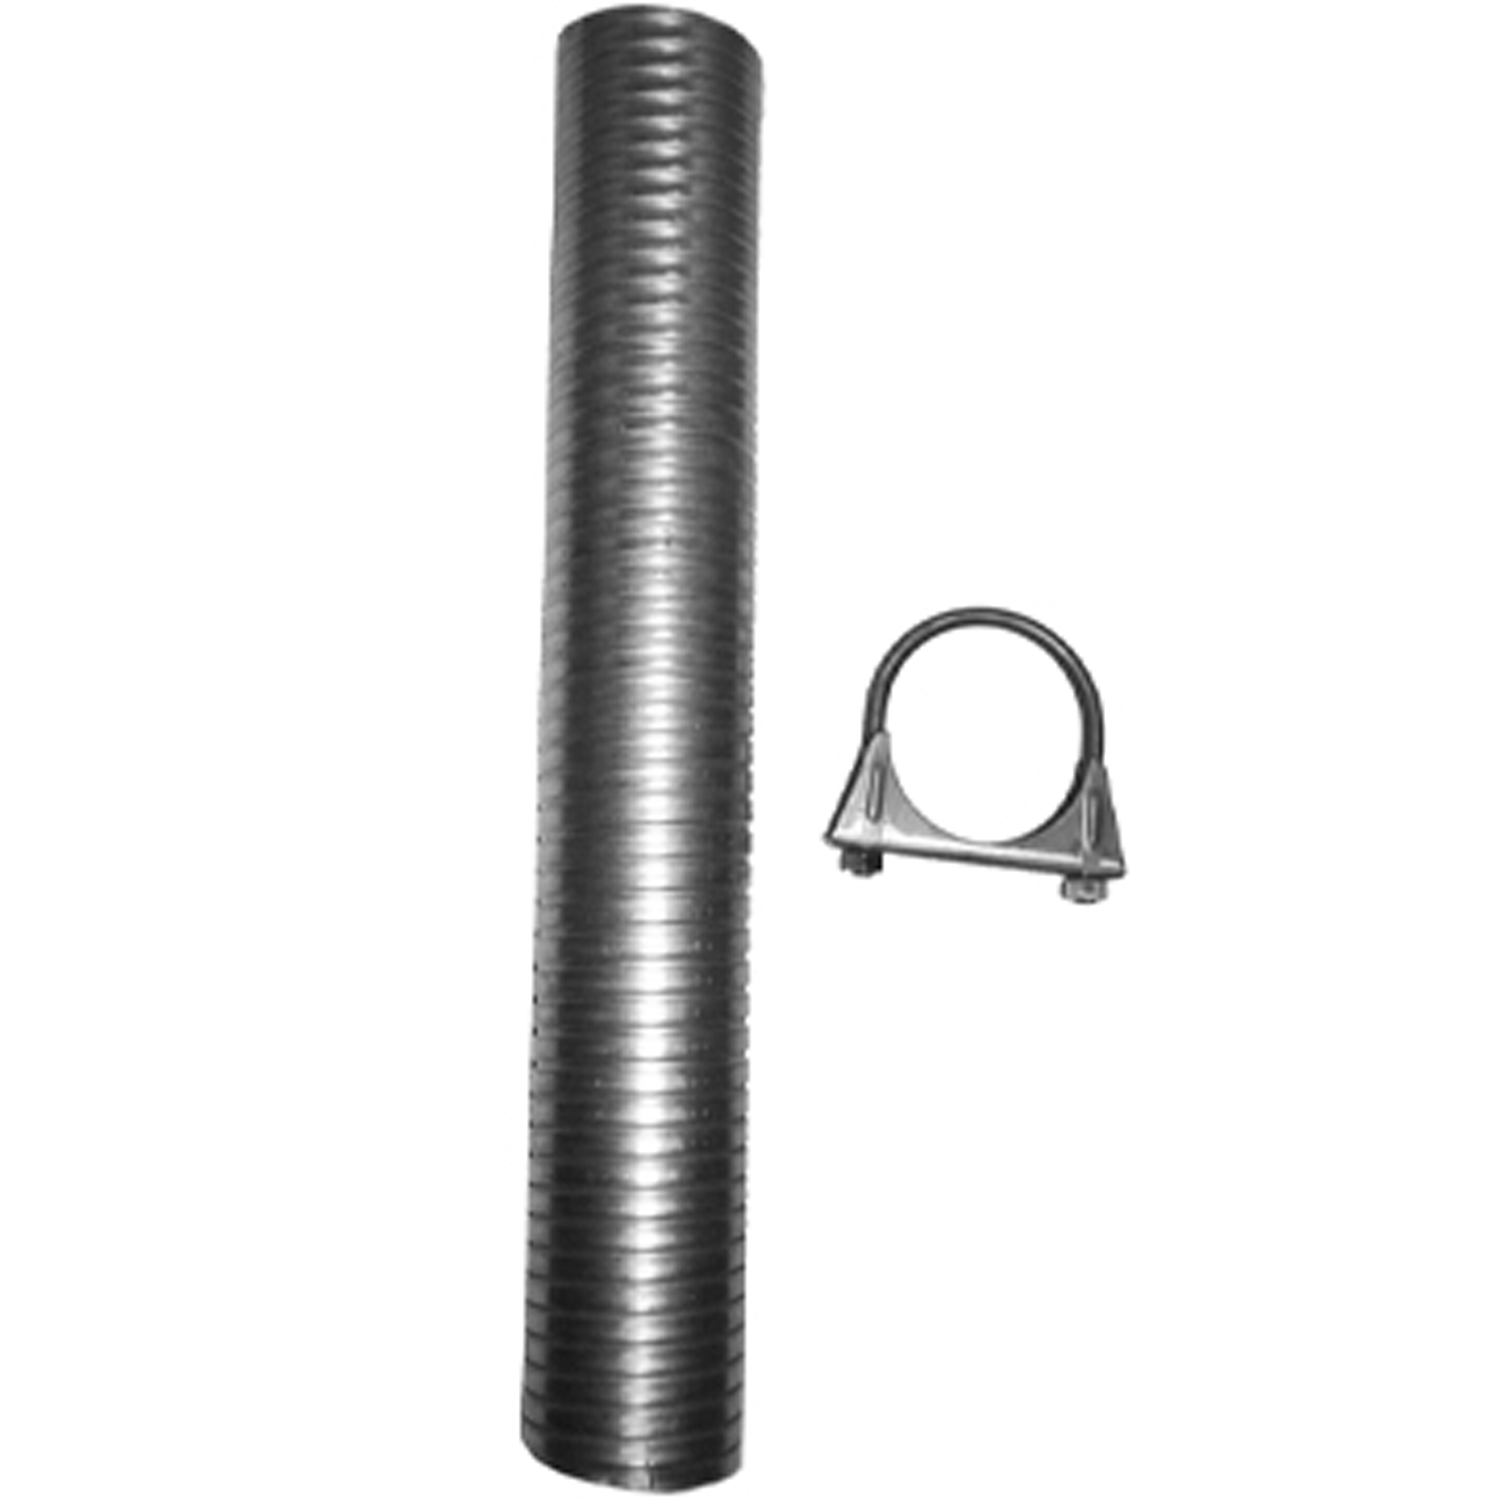 nickson 17032 exhaust system repair kit use to repair small sections of exhaust pipe flexible steel tubing 1 7 8 inch diameter x 18 inch length